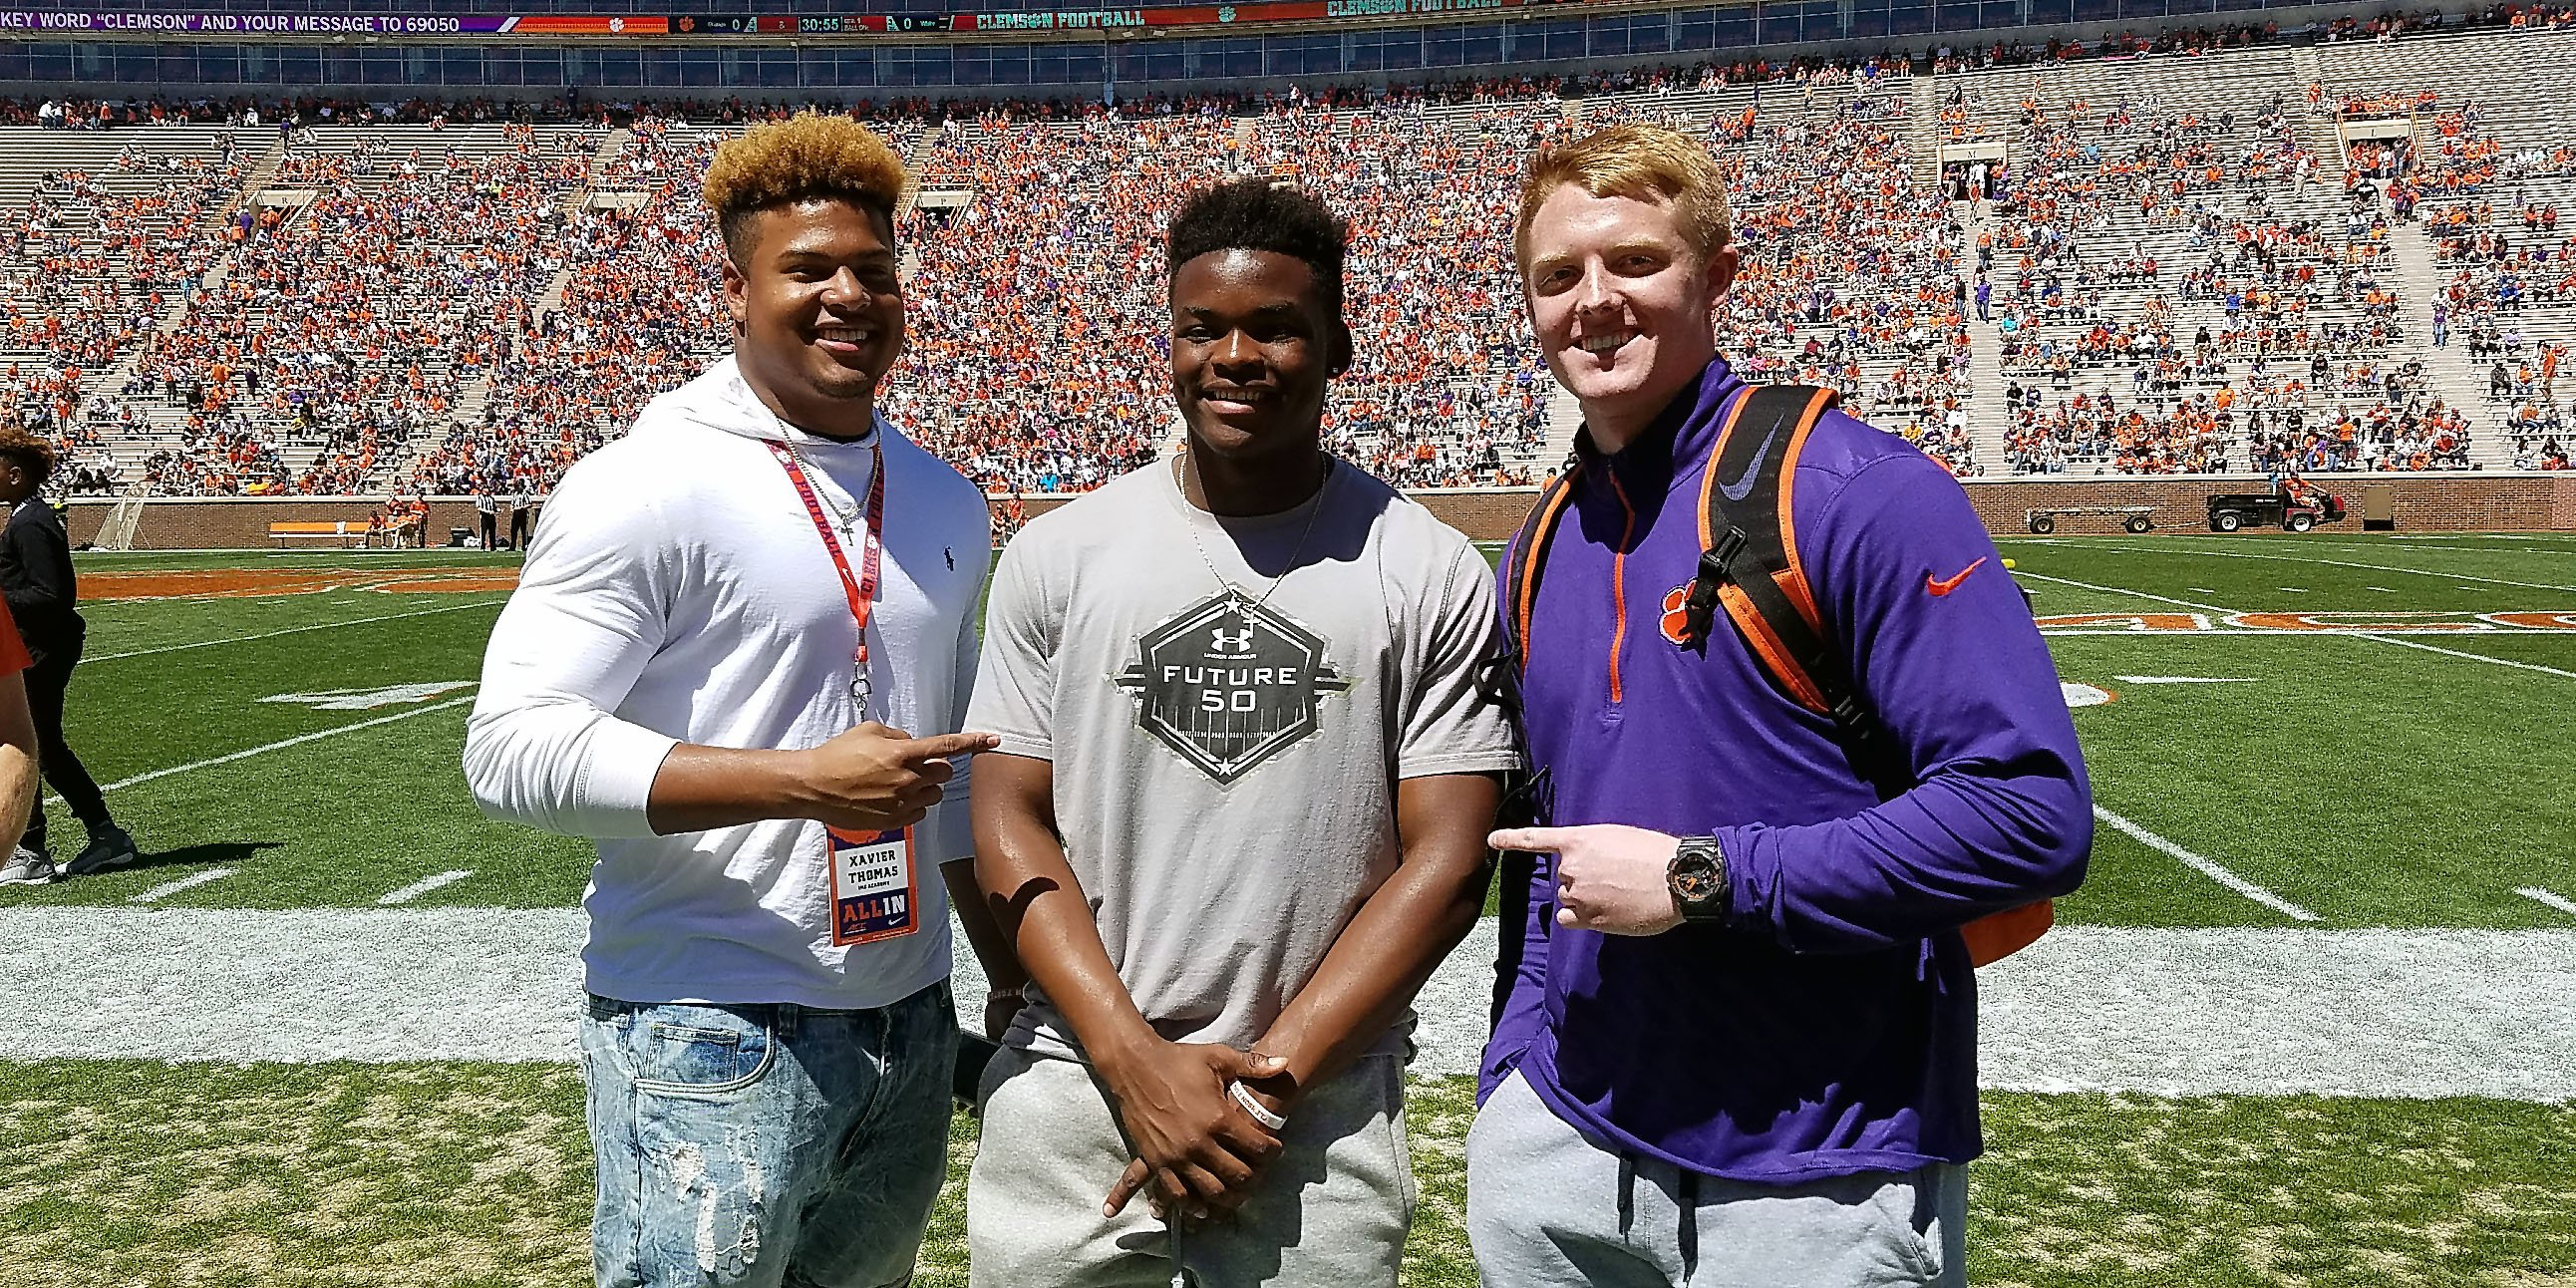 Xavier Thomas, Mike Jones and Jake Venables are three members of the 2018 class